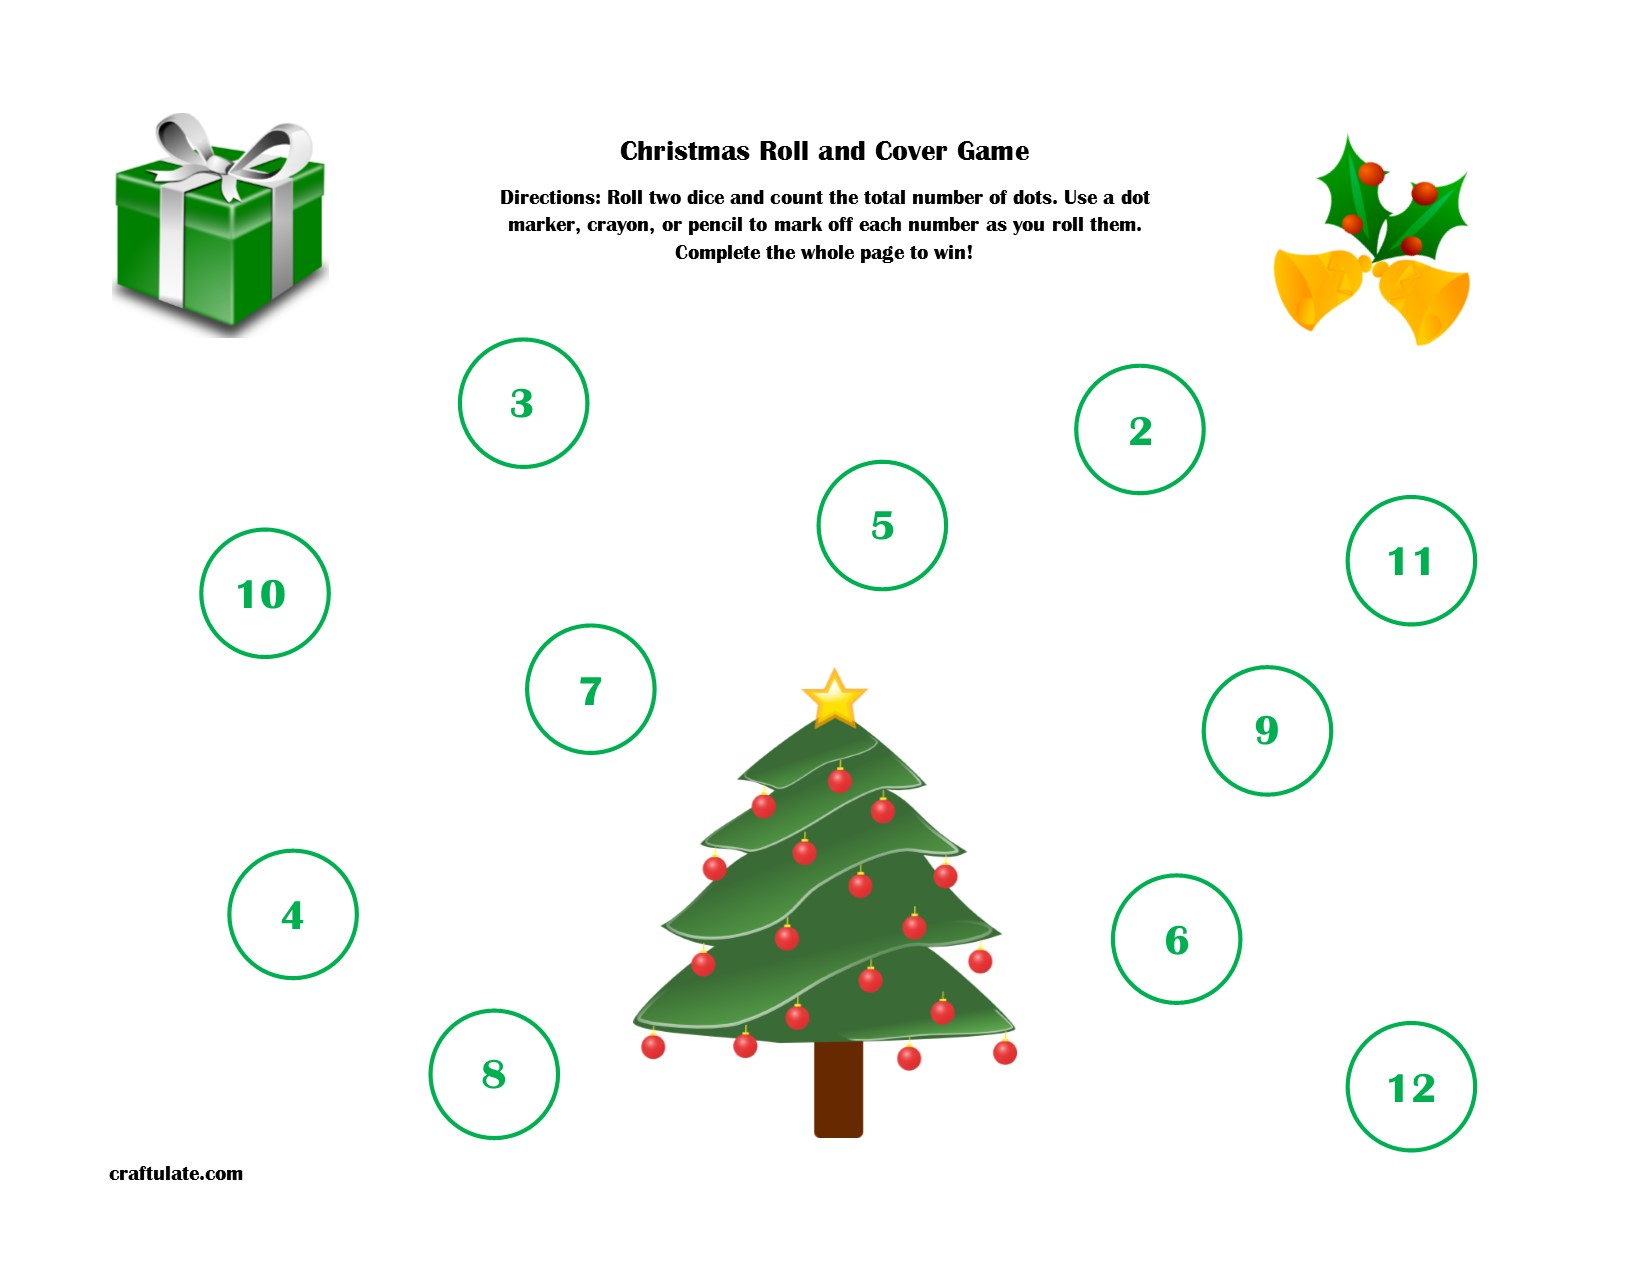 graphic regarding Christmas Dice Game Printable named Xmas Roll and Protect Activity Printable - Craftulate